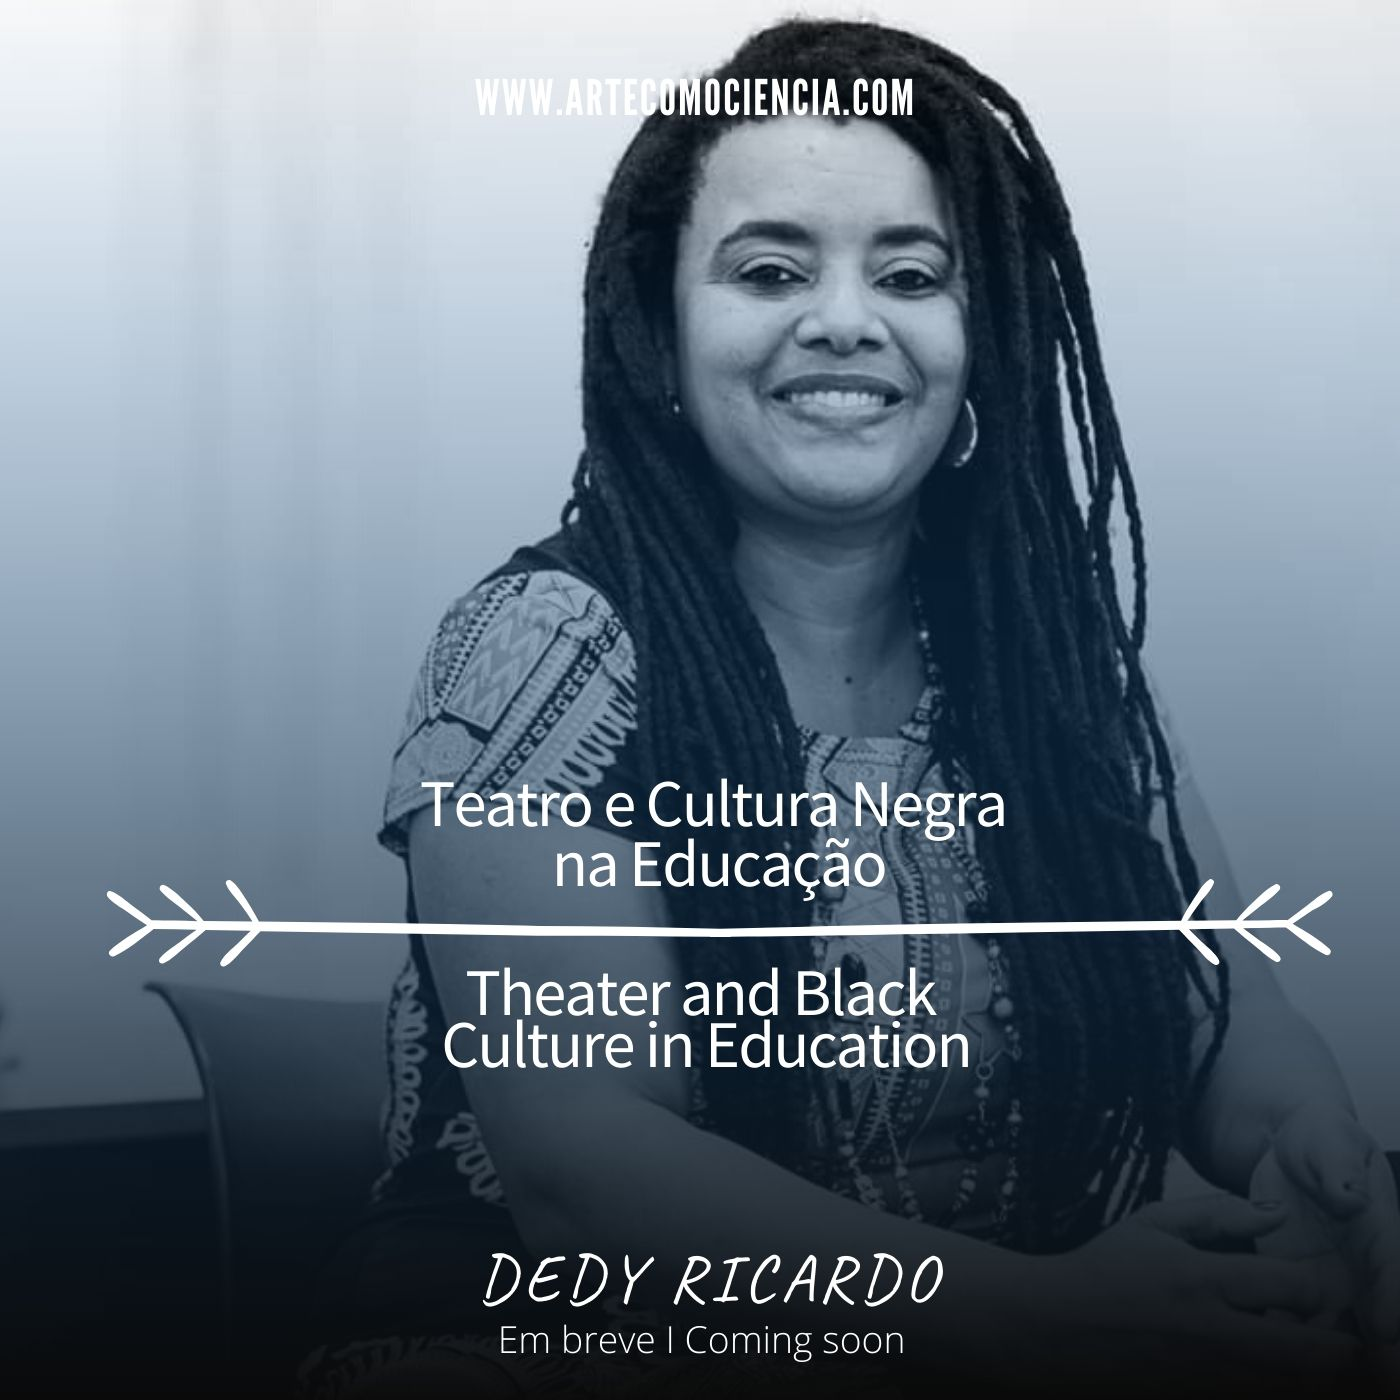 Dedy Ricardo: Teatro e Cultura Negra na Educação/Theater and Black Culture in Education